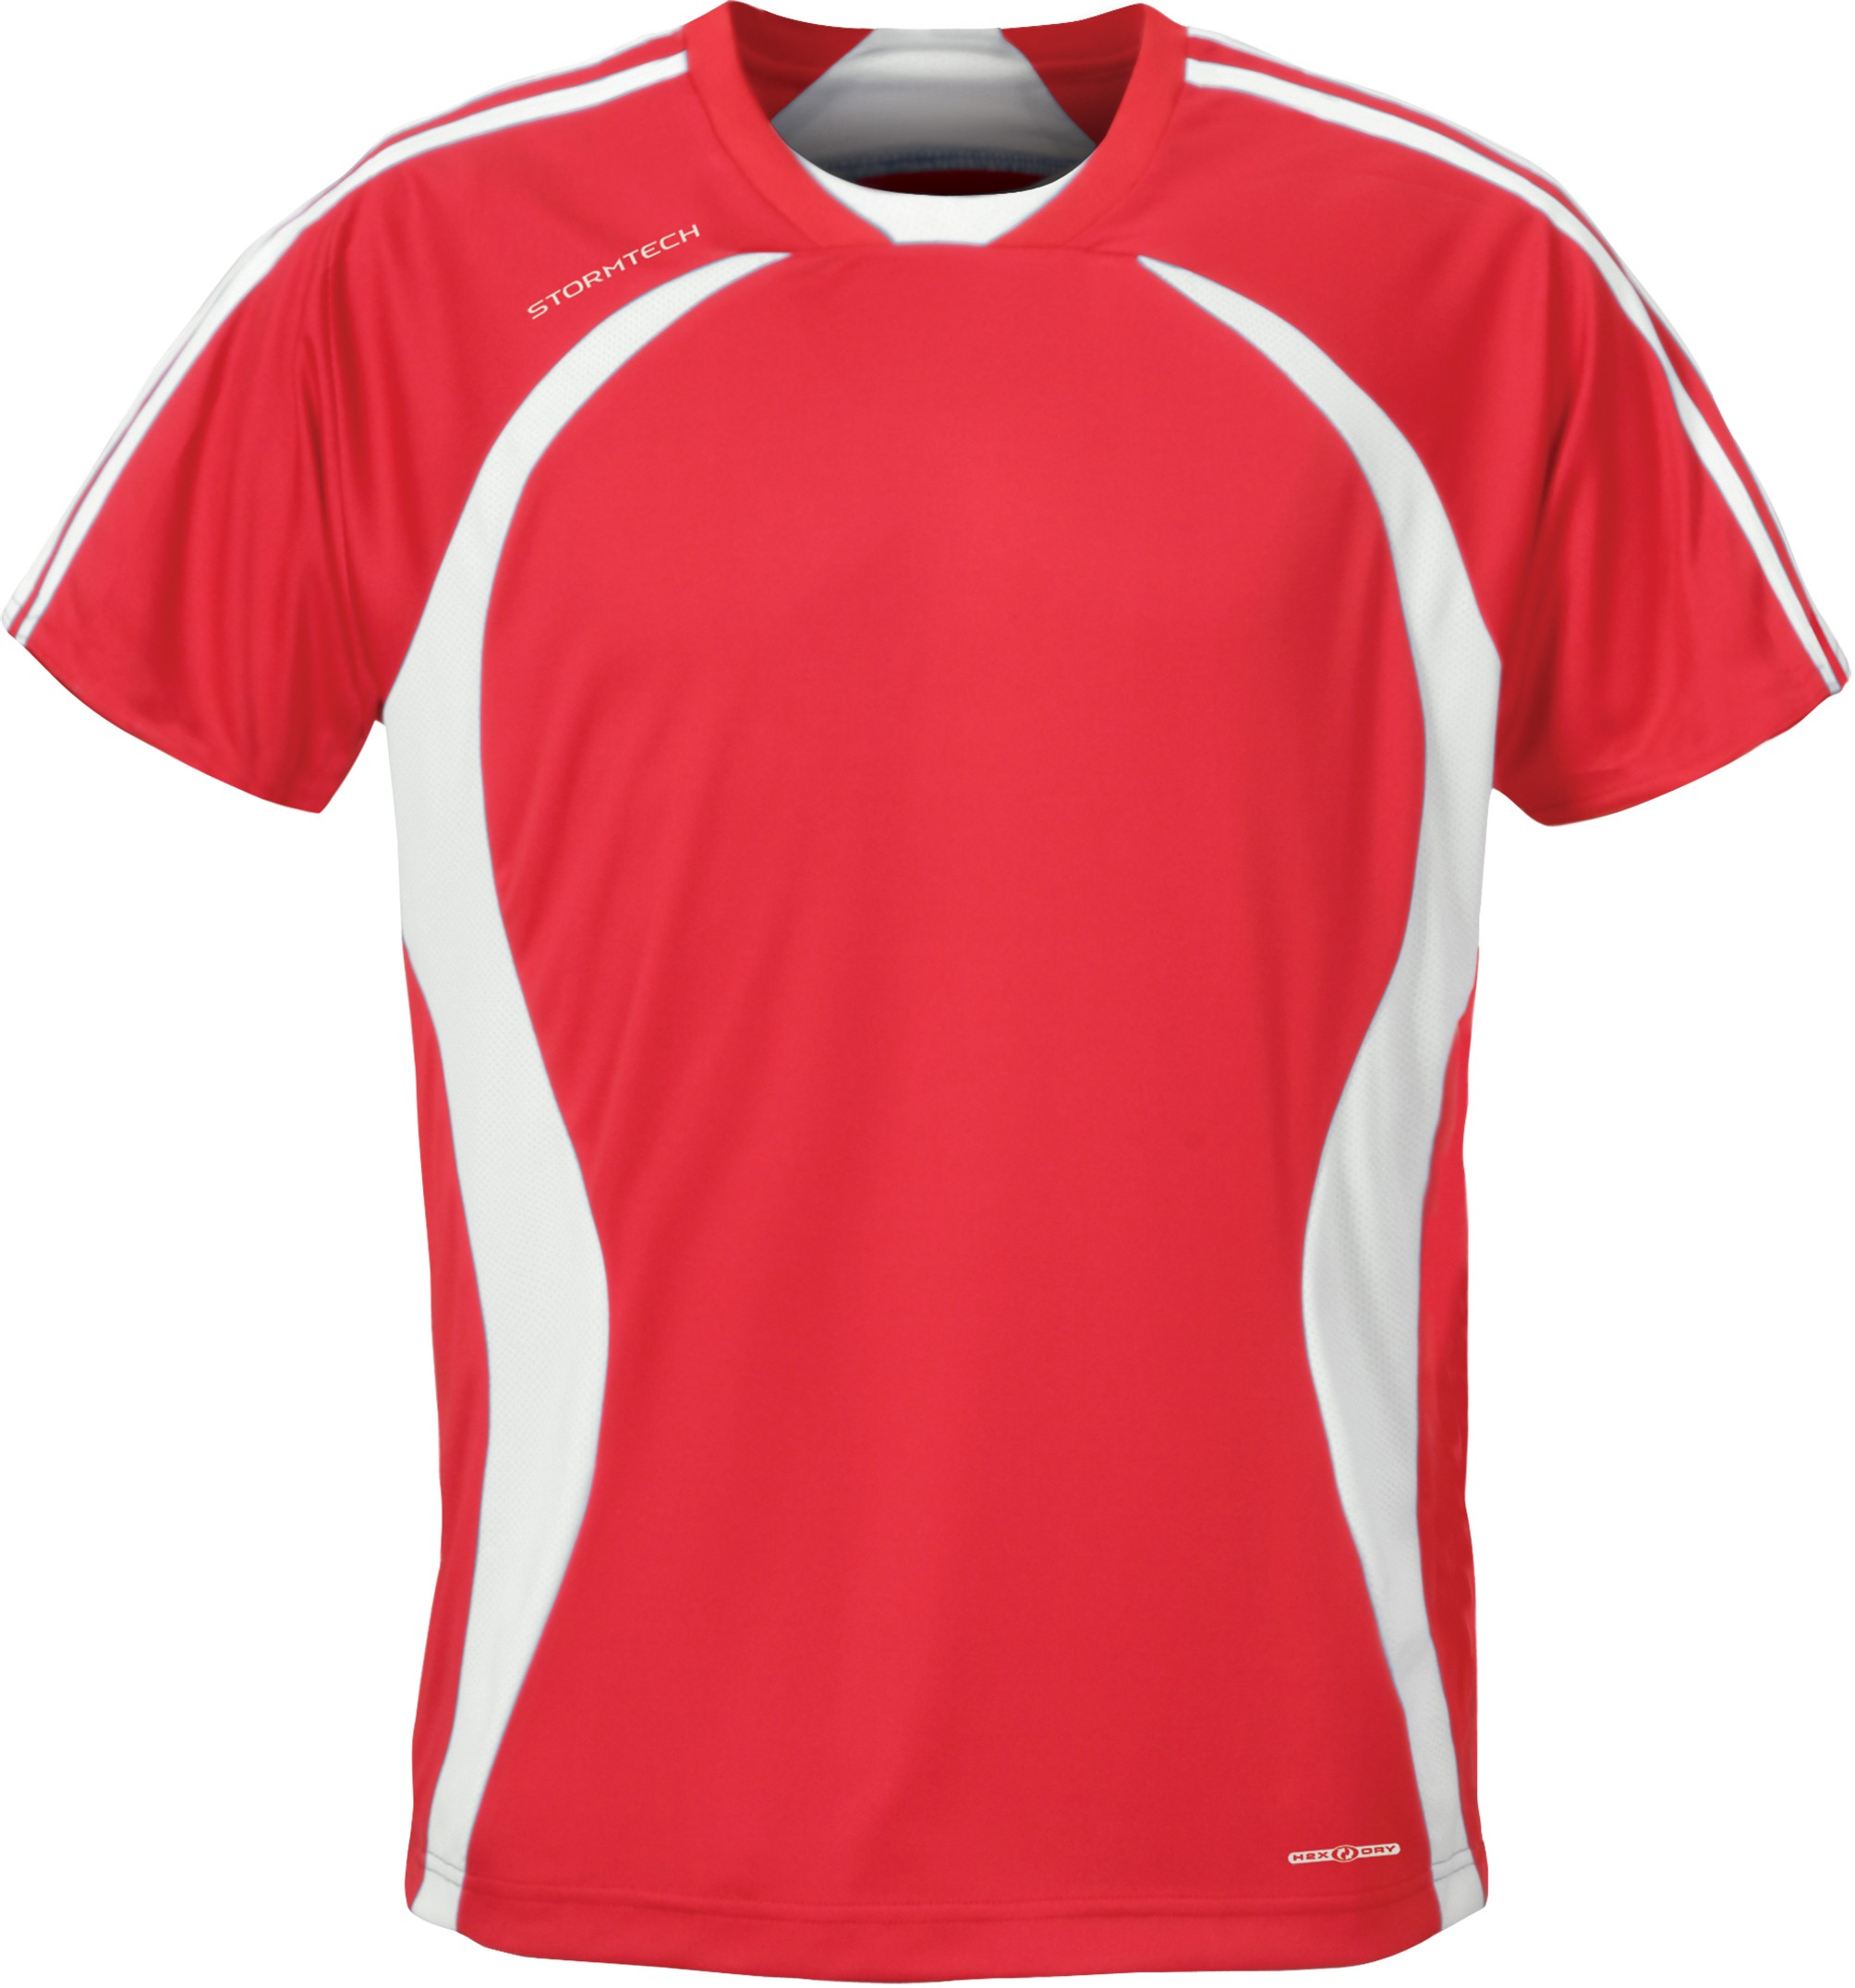 Athletic Shirts Action Apparel Winnipeg Mb